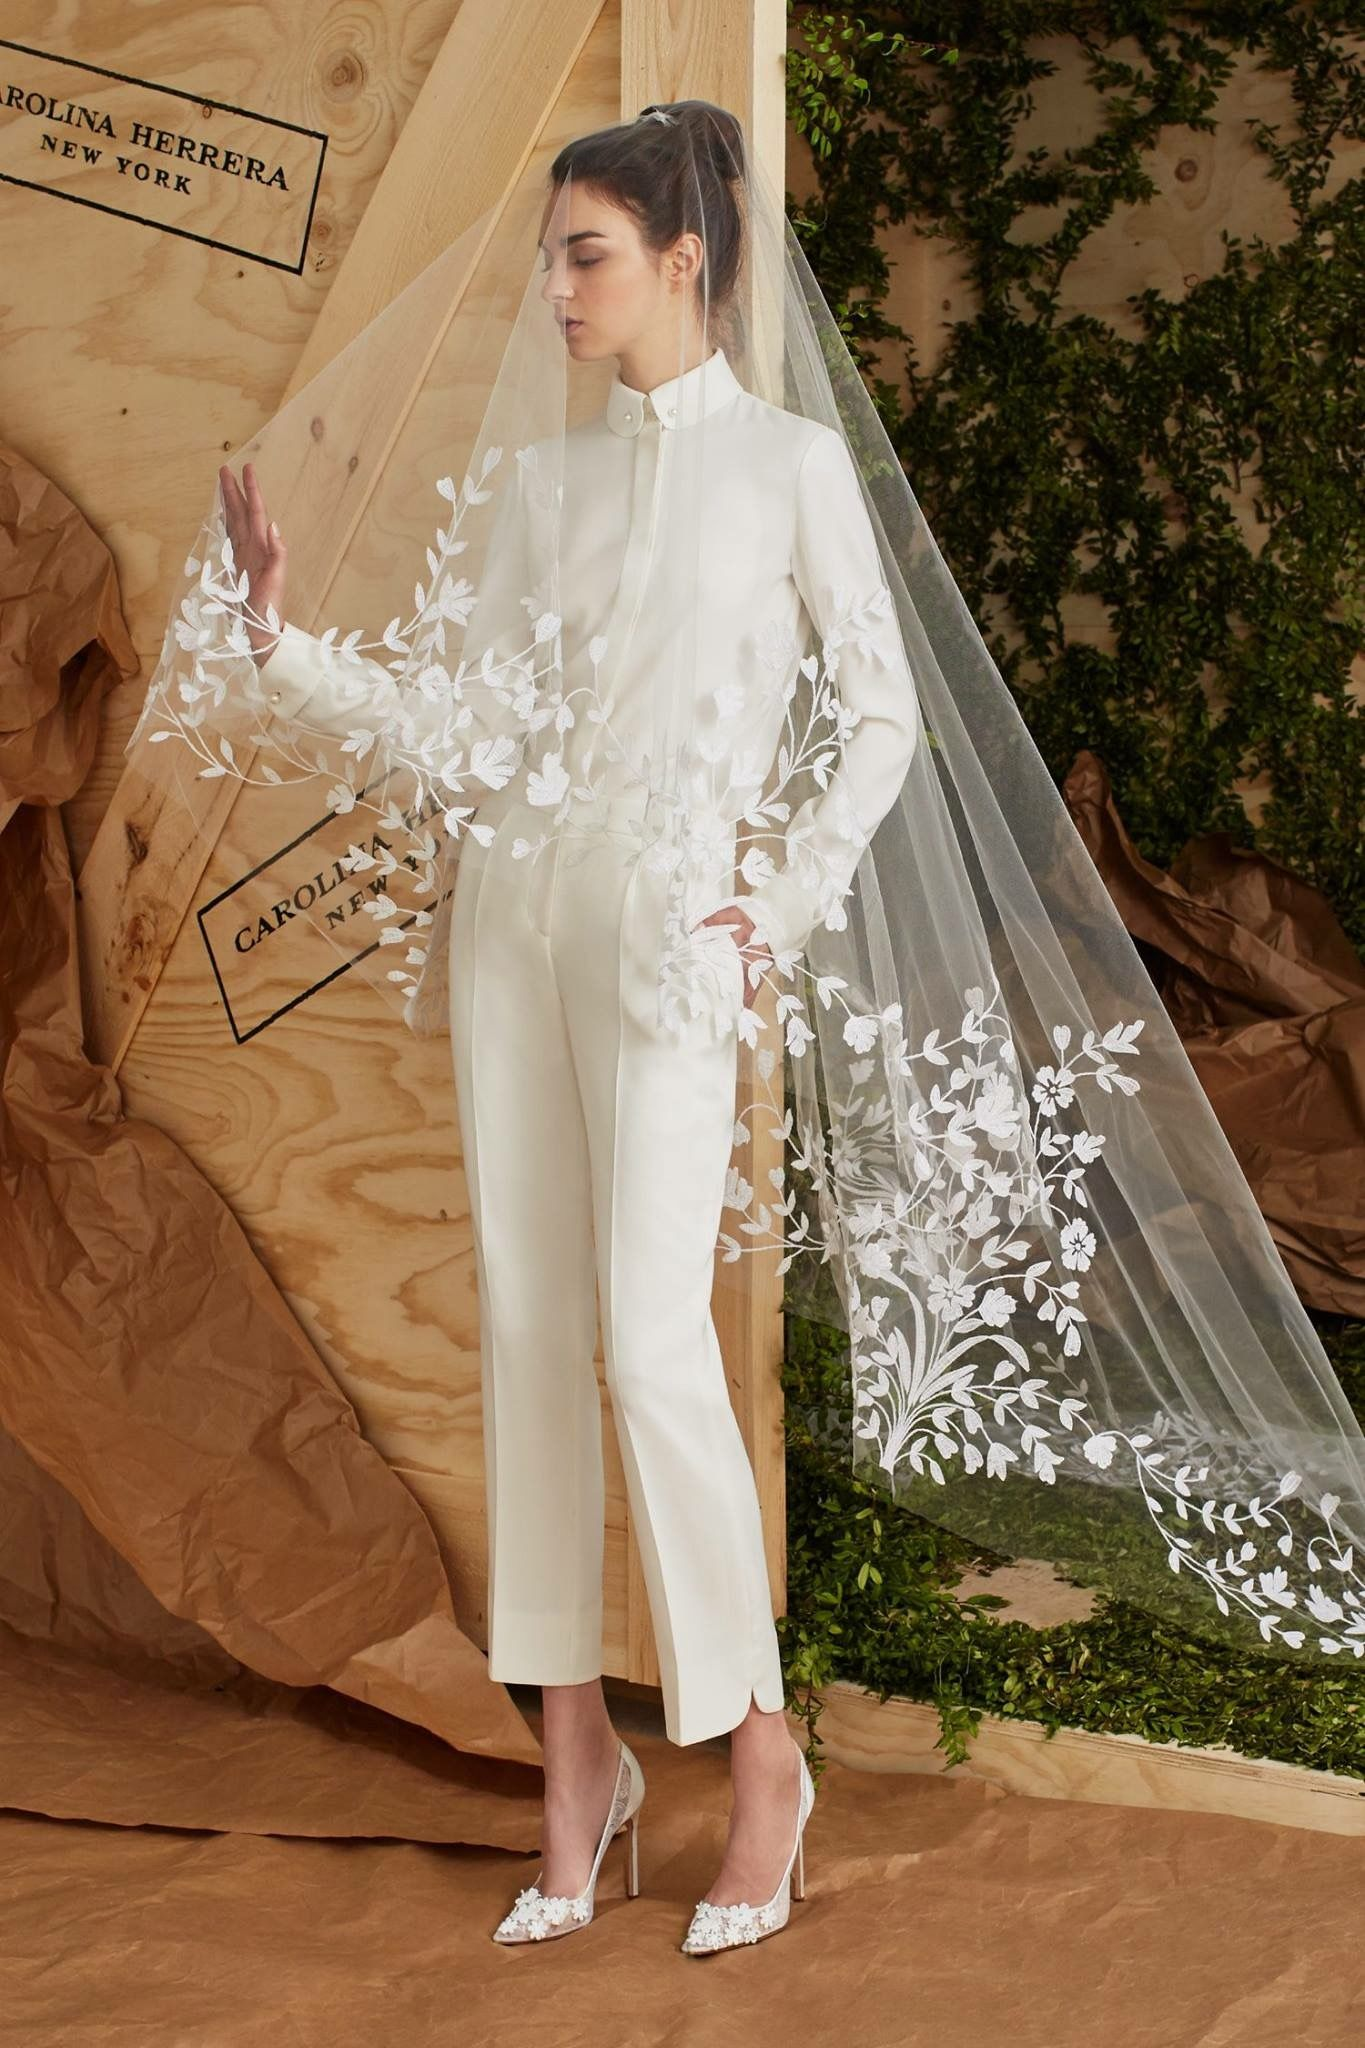 Edgy wedding dresses  Chic and edgy with a hint of retror the unconventional bride